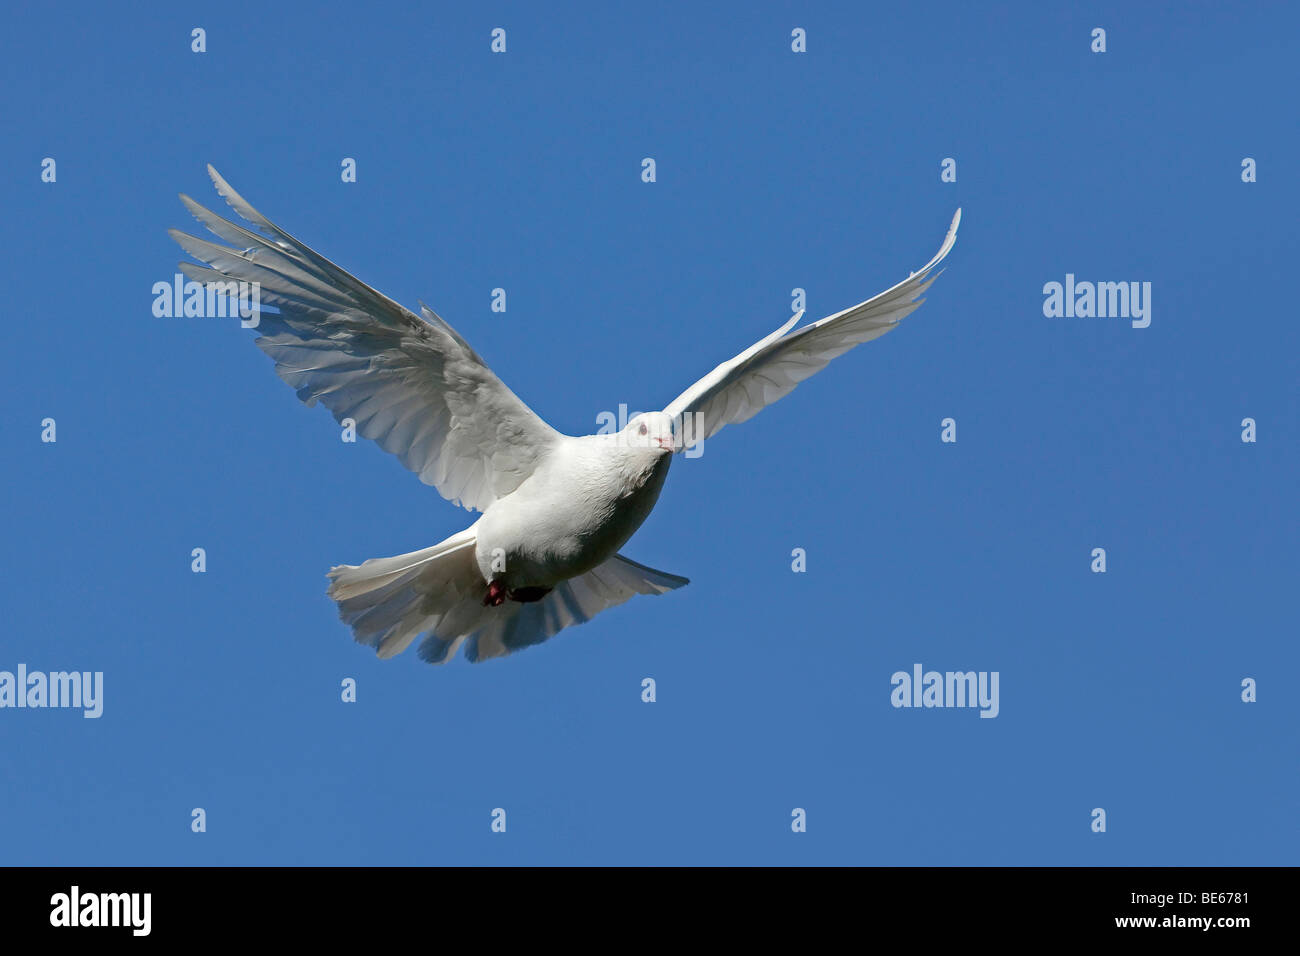 Domestic Pigeon (Columba livia domestica). White dove in flight. - Stock Image